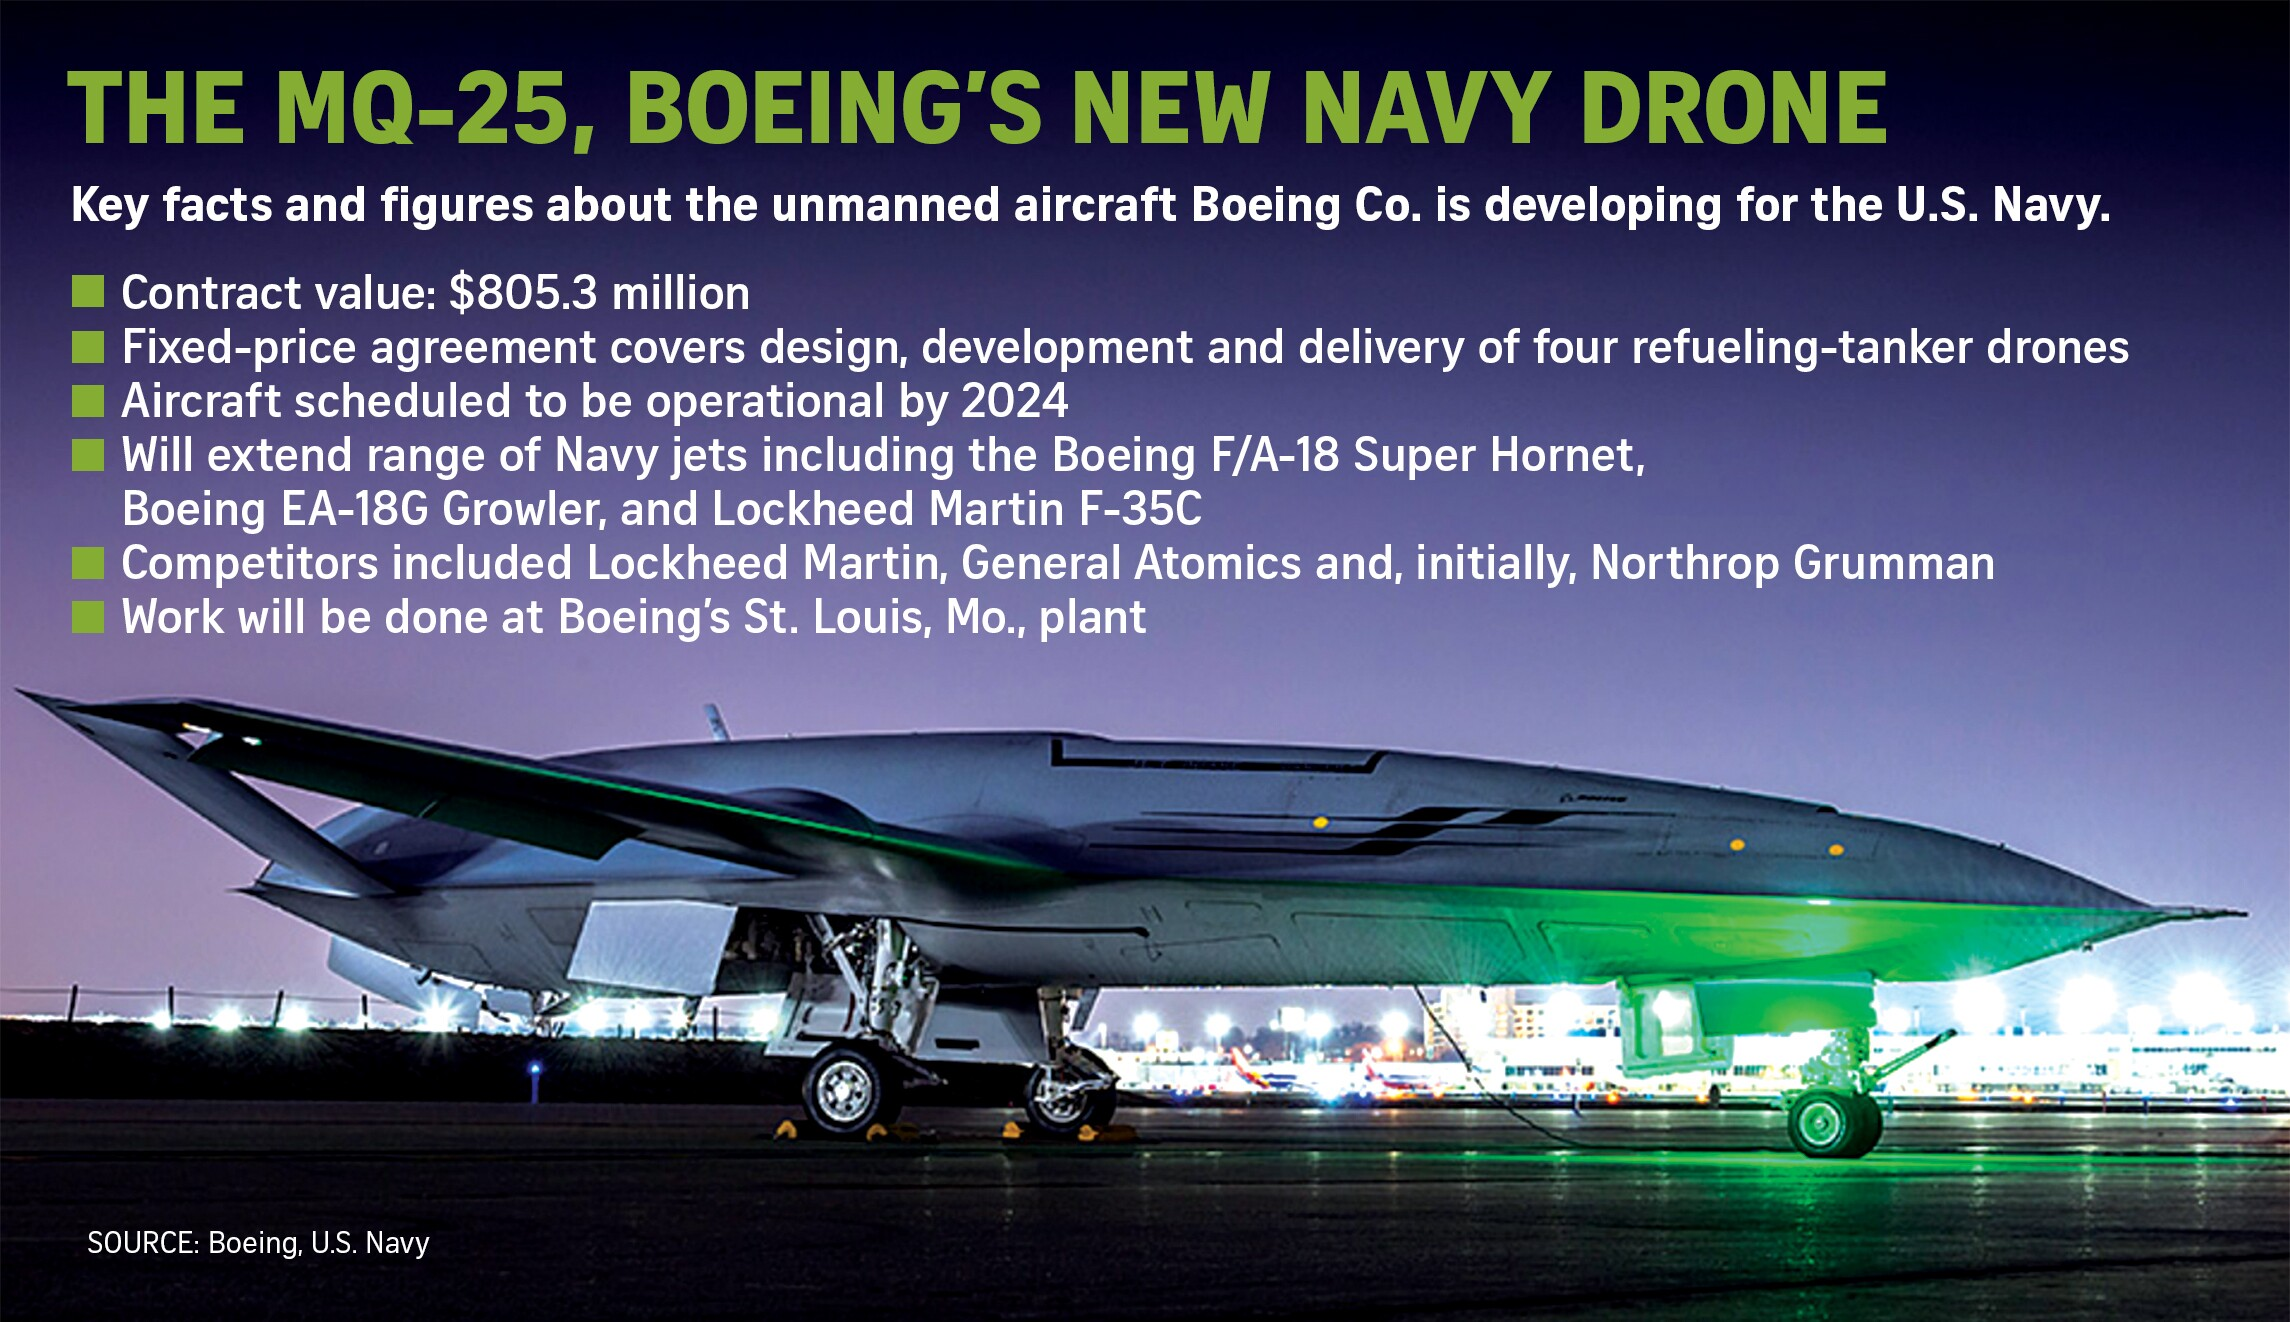 Landmark Navy drone deal offers Boeing potential for a new defense